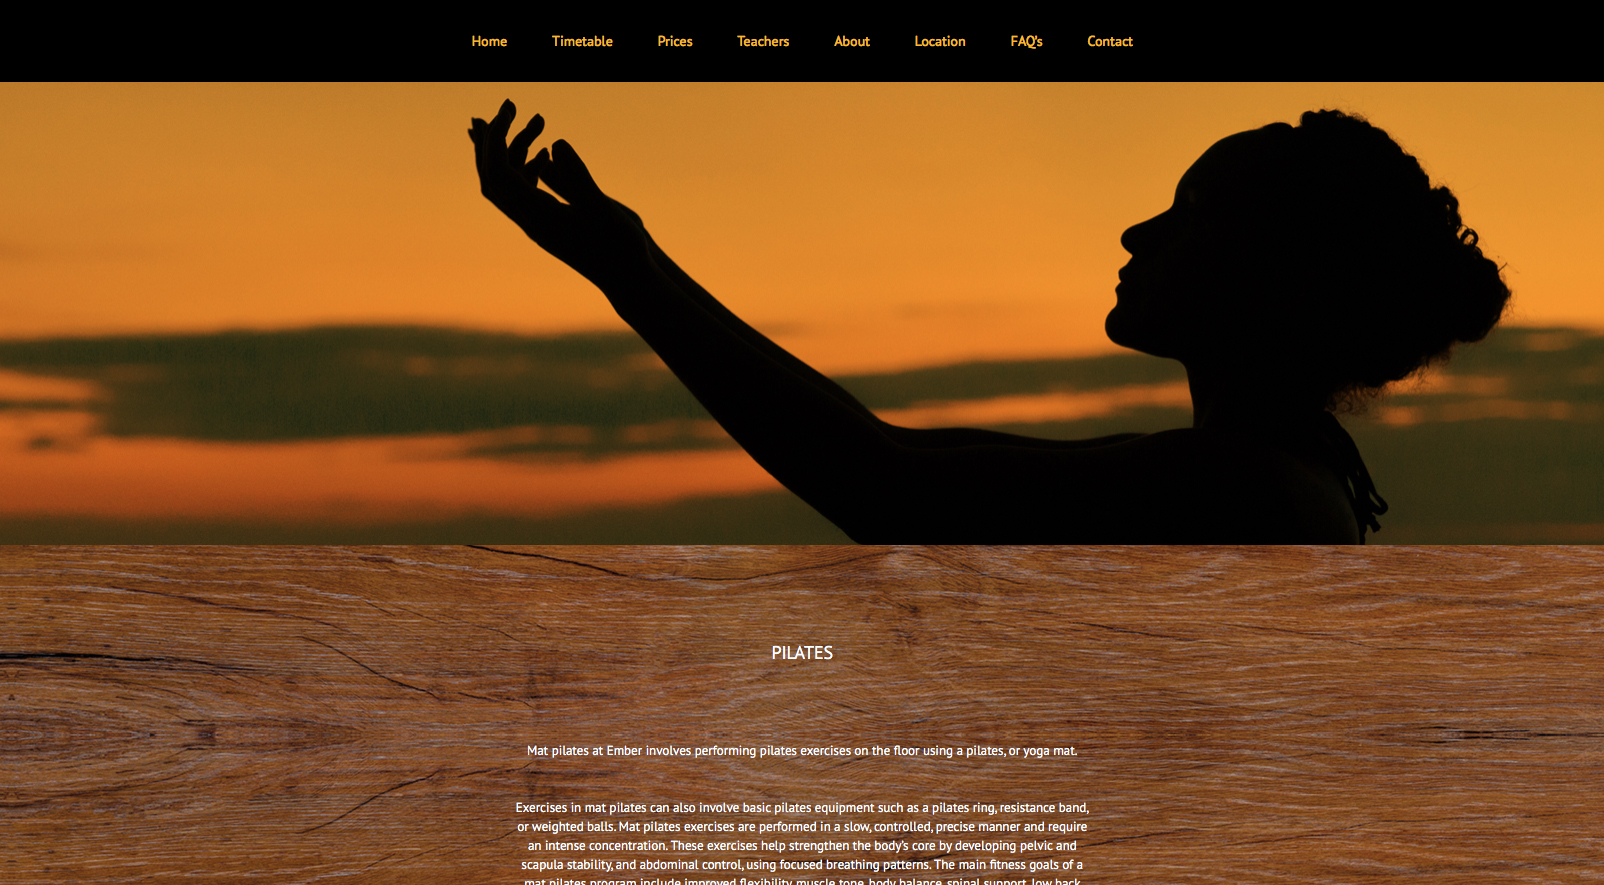 Pilates page screenshot from Ember Yoga website design